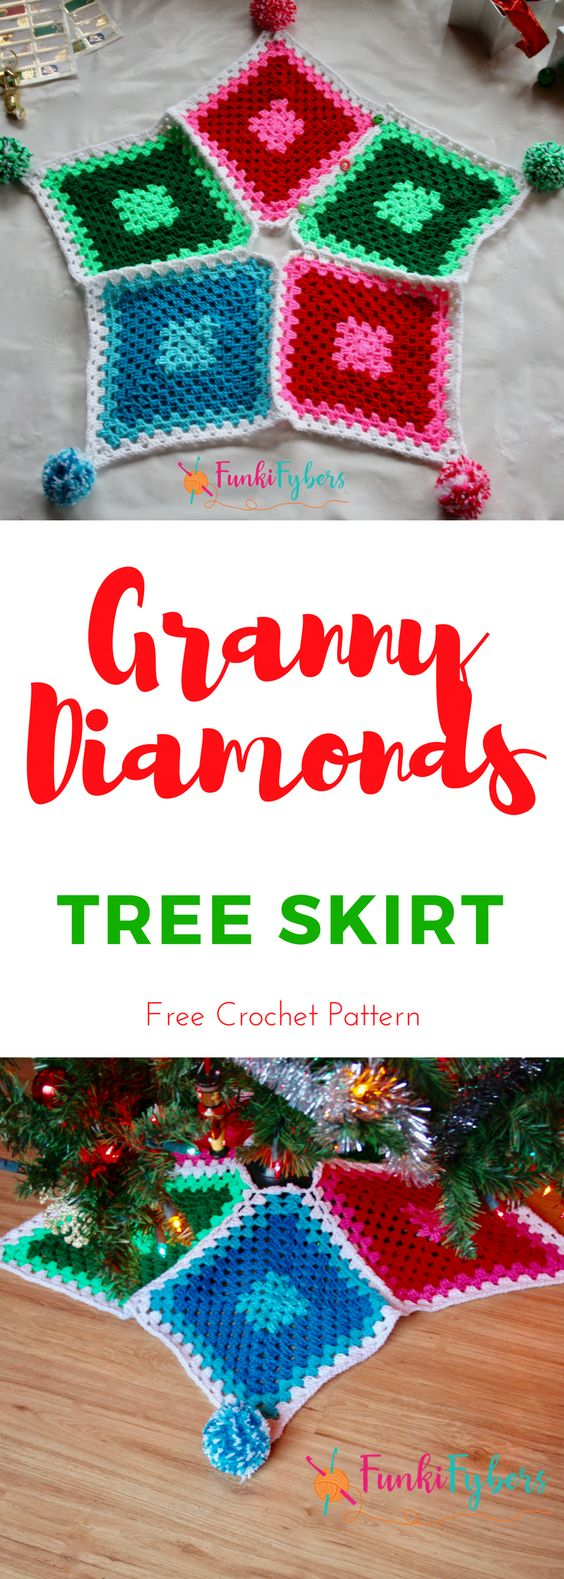 This Christmas tree skirt is made with 5 granny diamonds, then joined. Its easy to make and looks great with pom toms, enjoy this free crochet pattern, happy holidays.